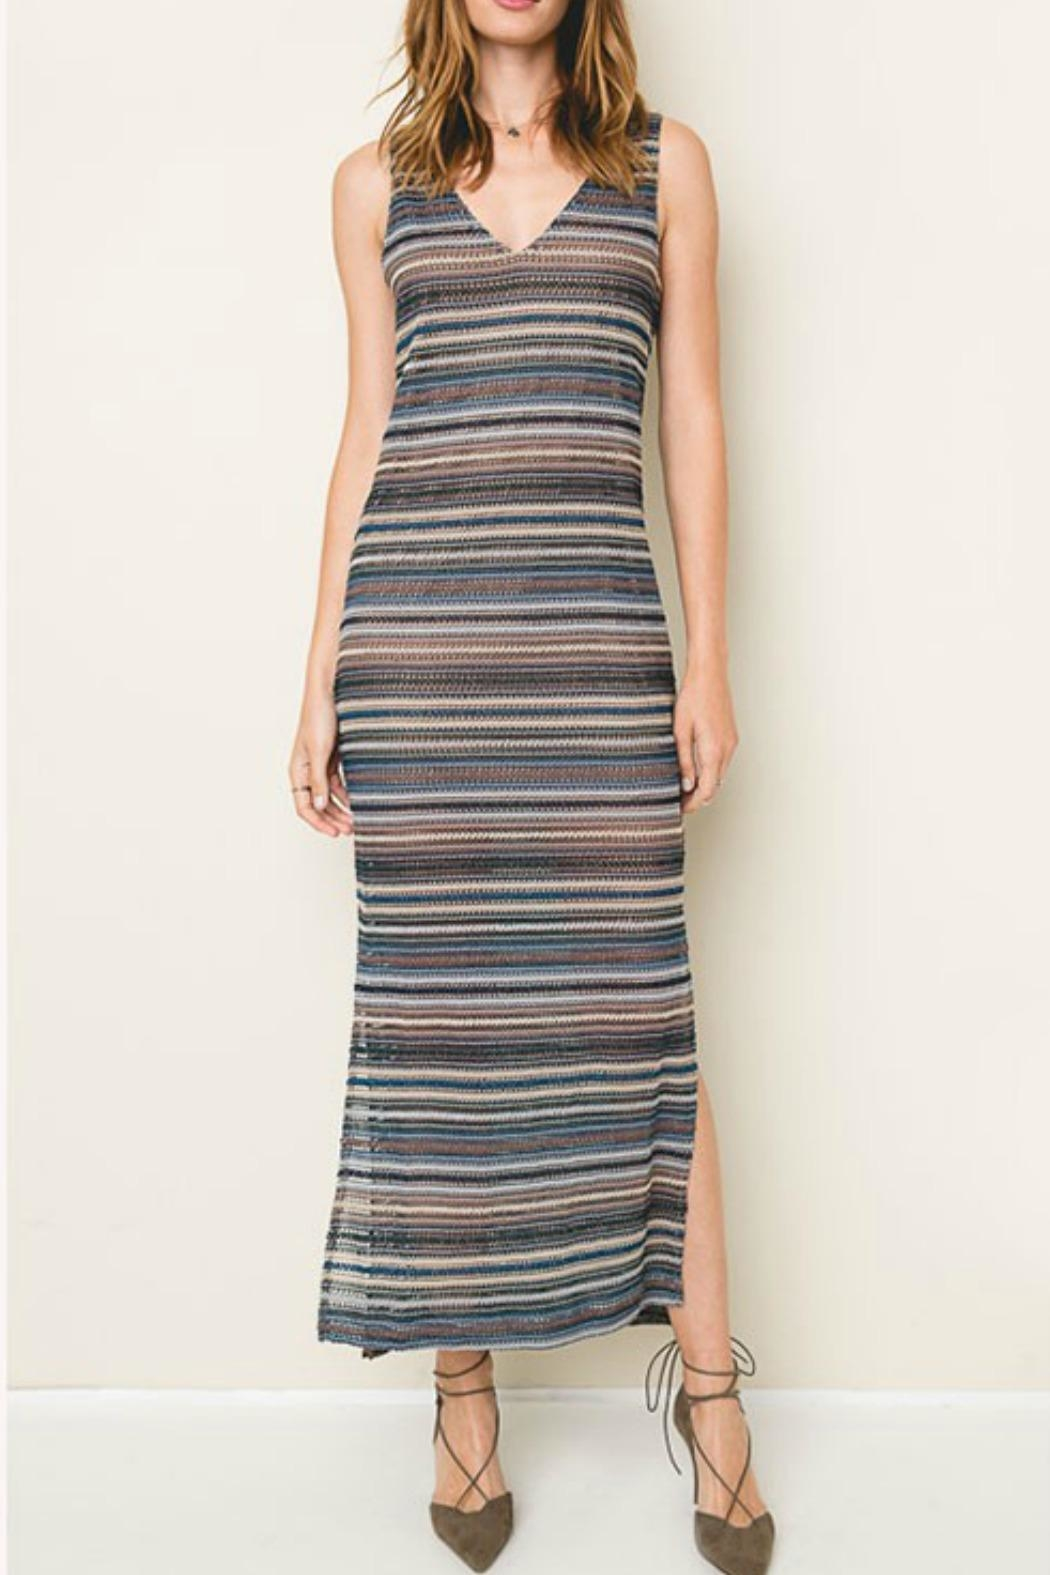 Hayden Los Angeles Sail Away Knit-Maxi - Front Cropped Image